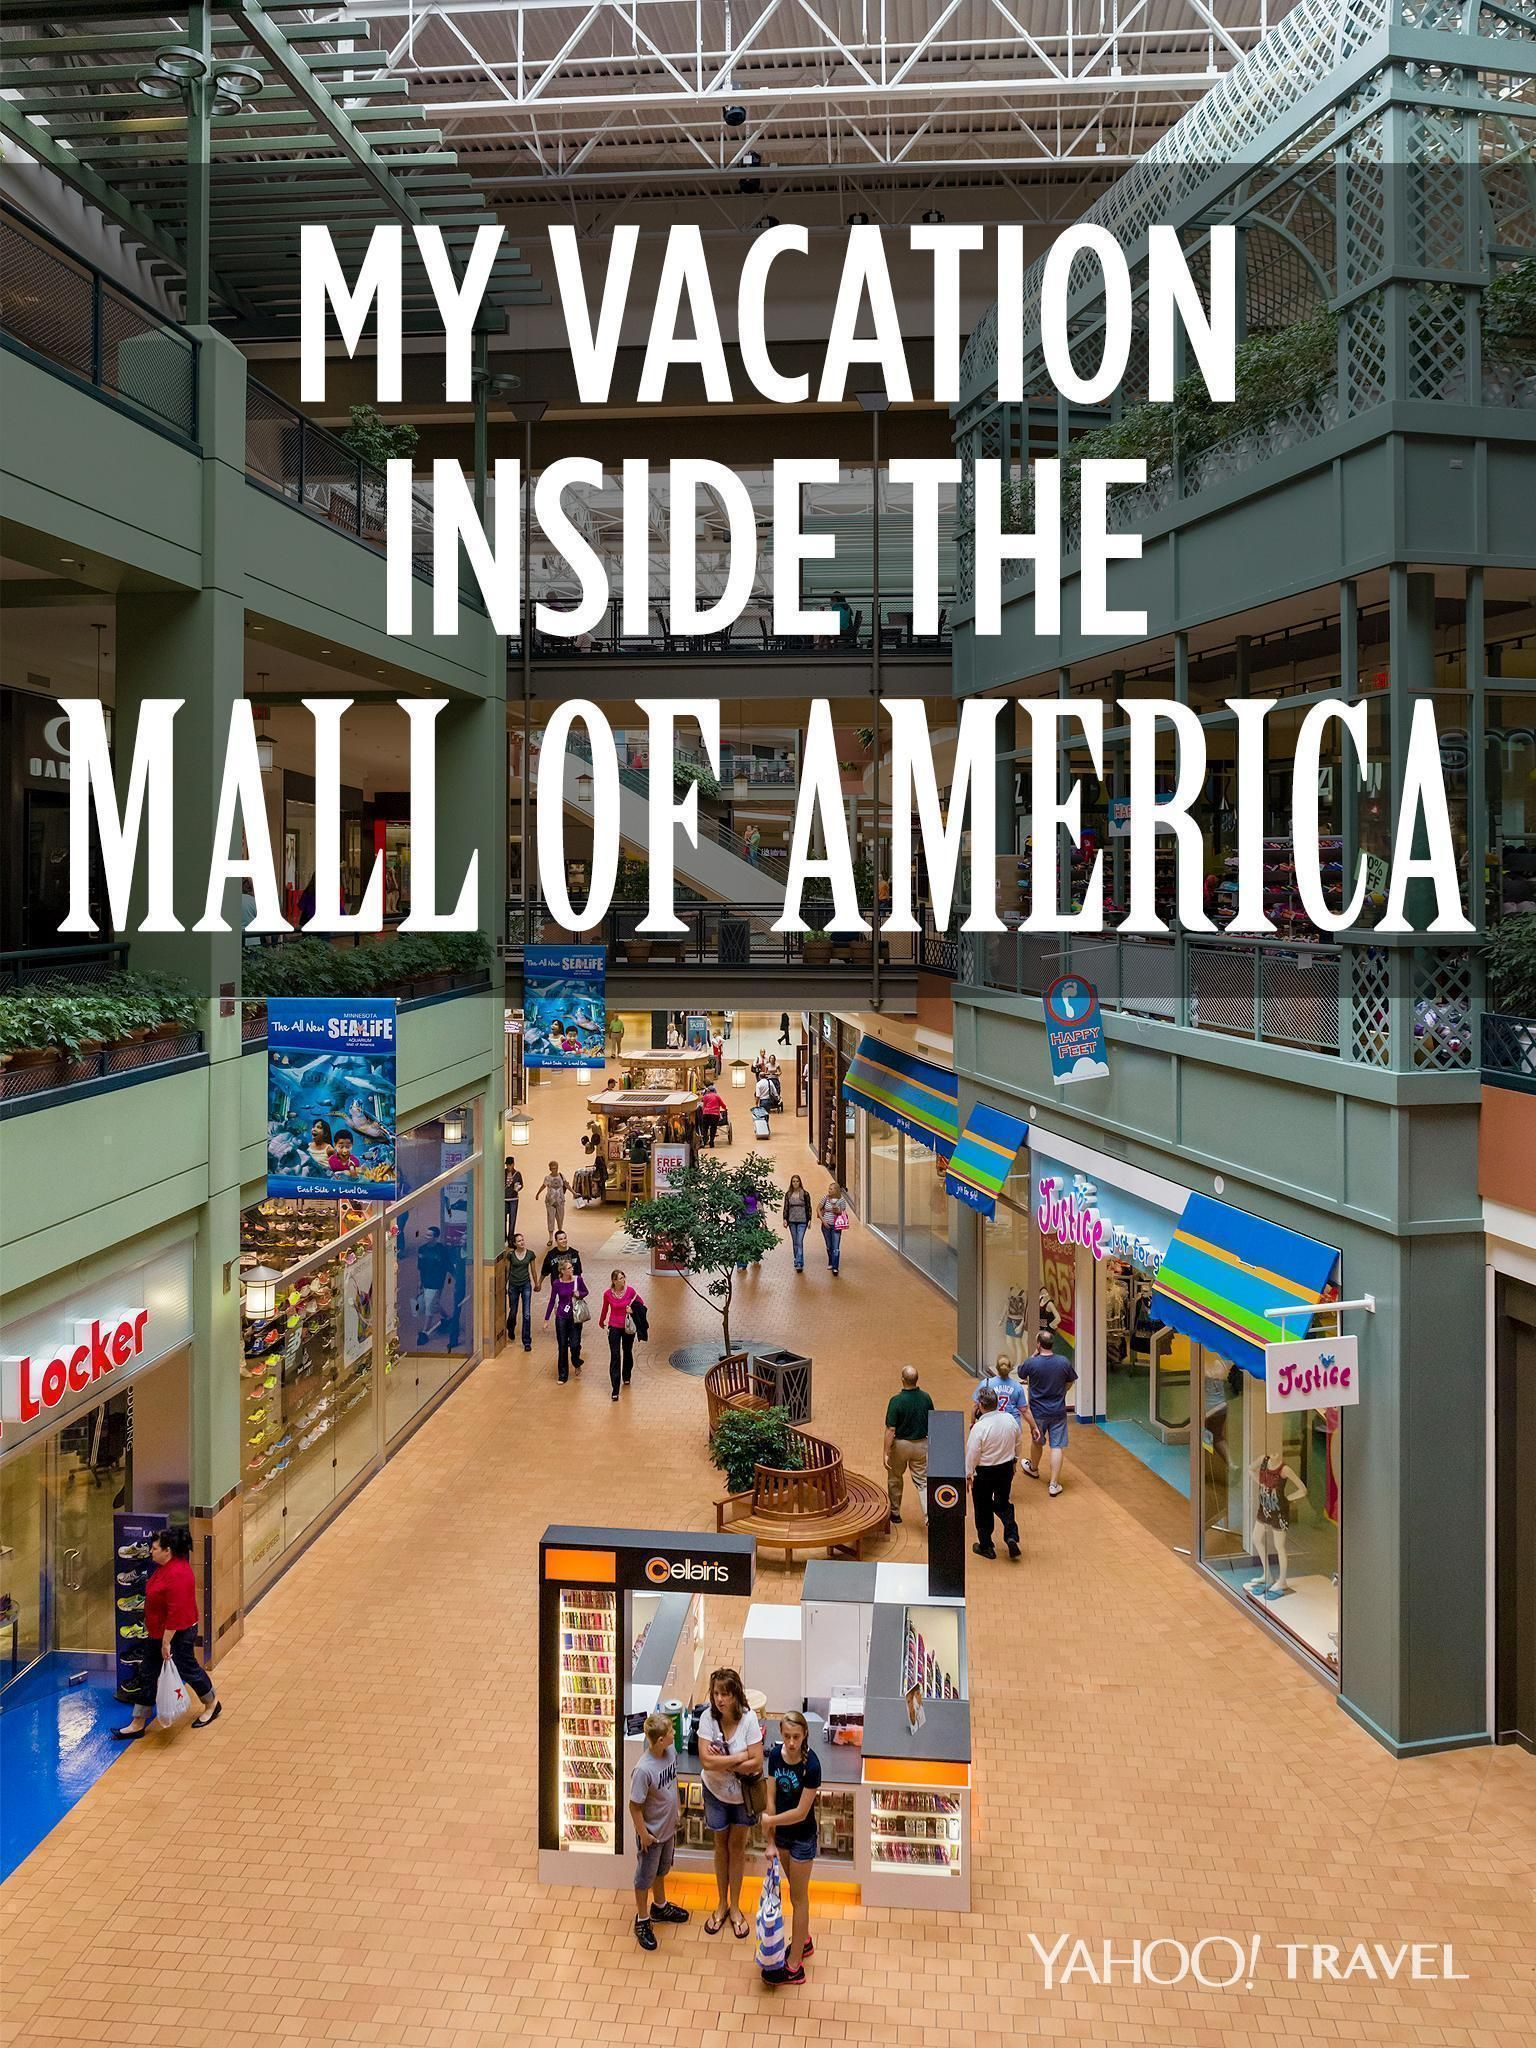 My vacation inside the mall of america westerns for Ikea hours minneapolis